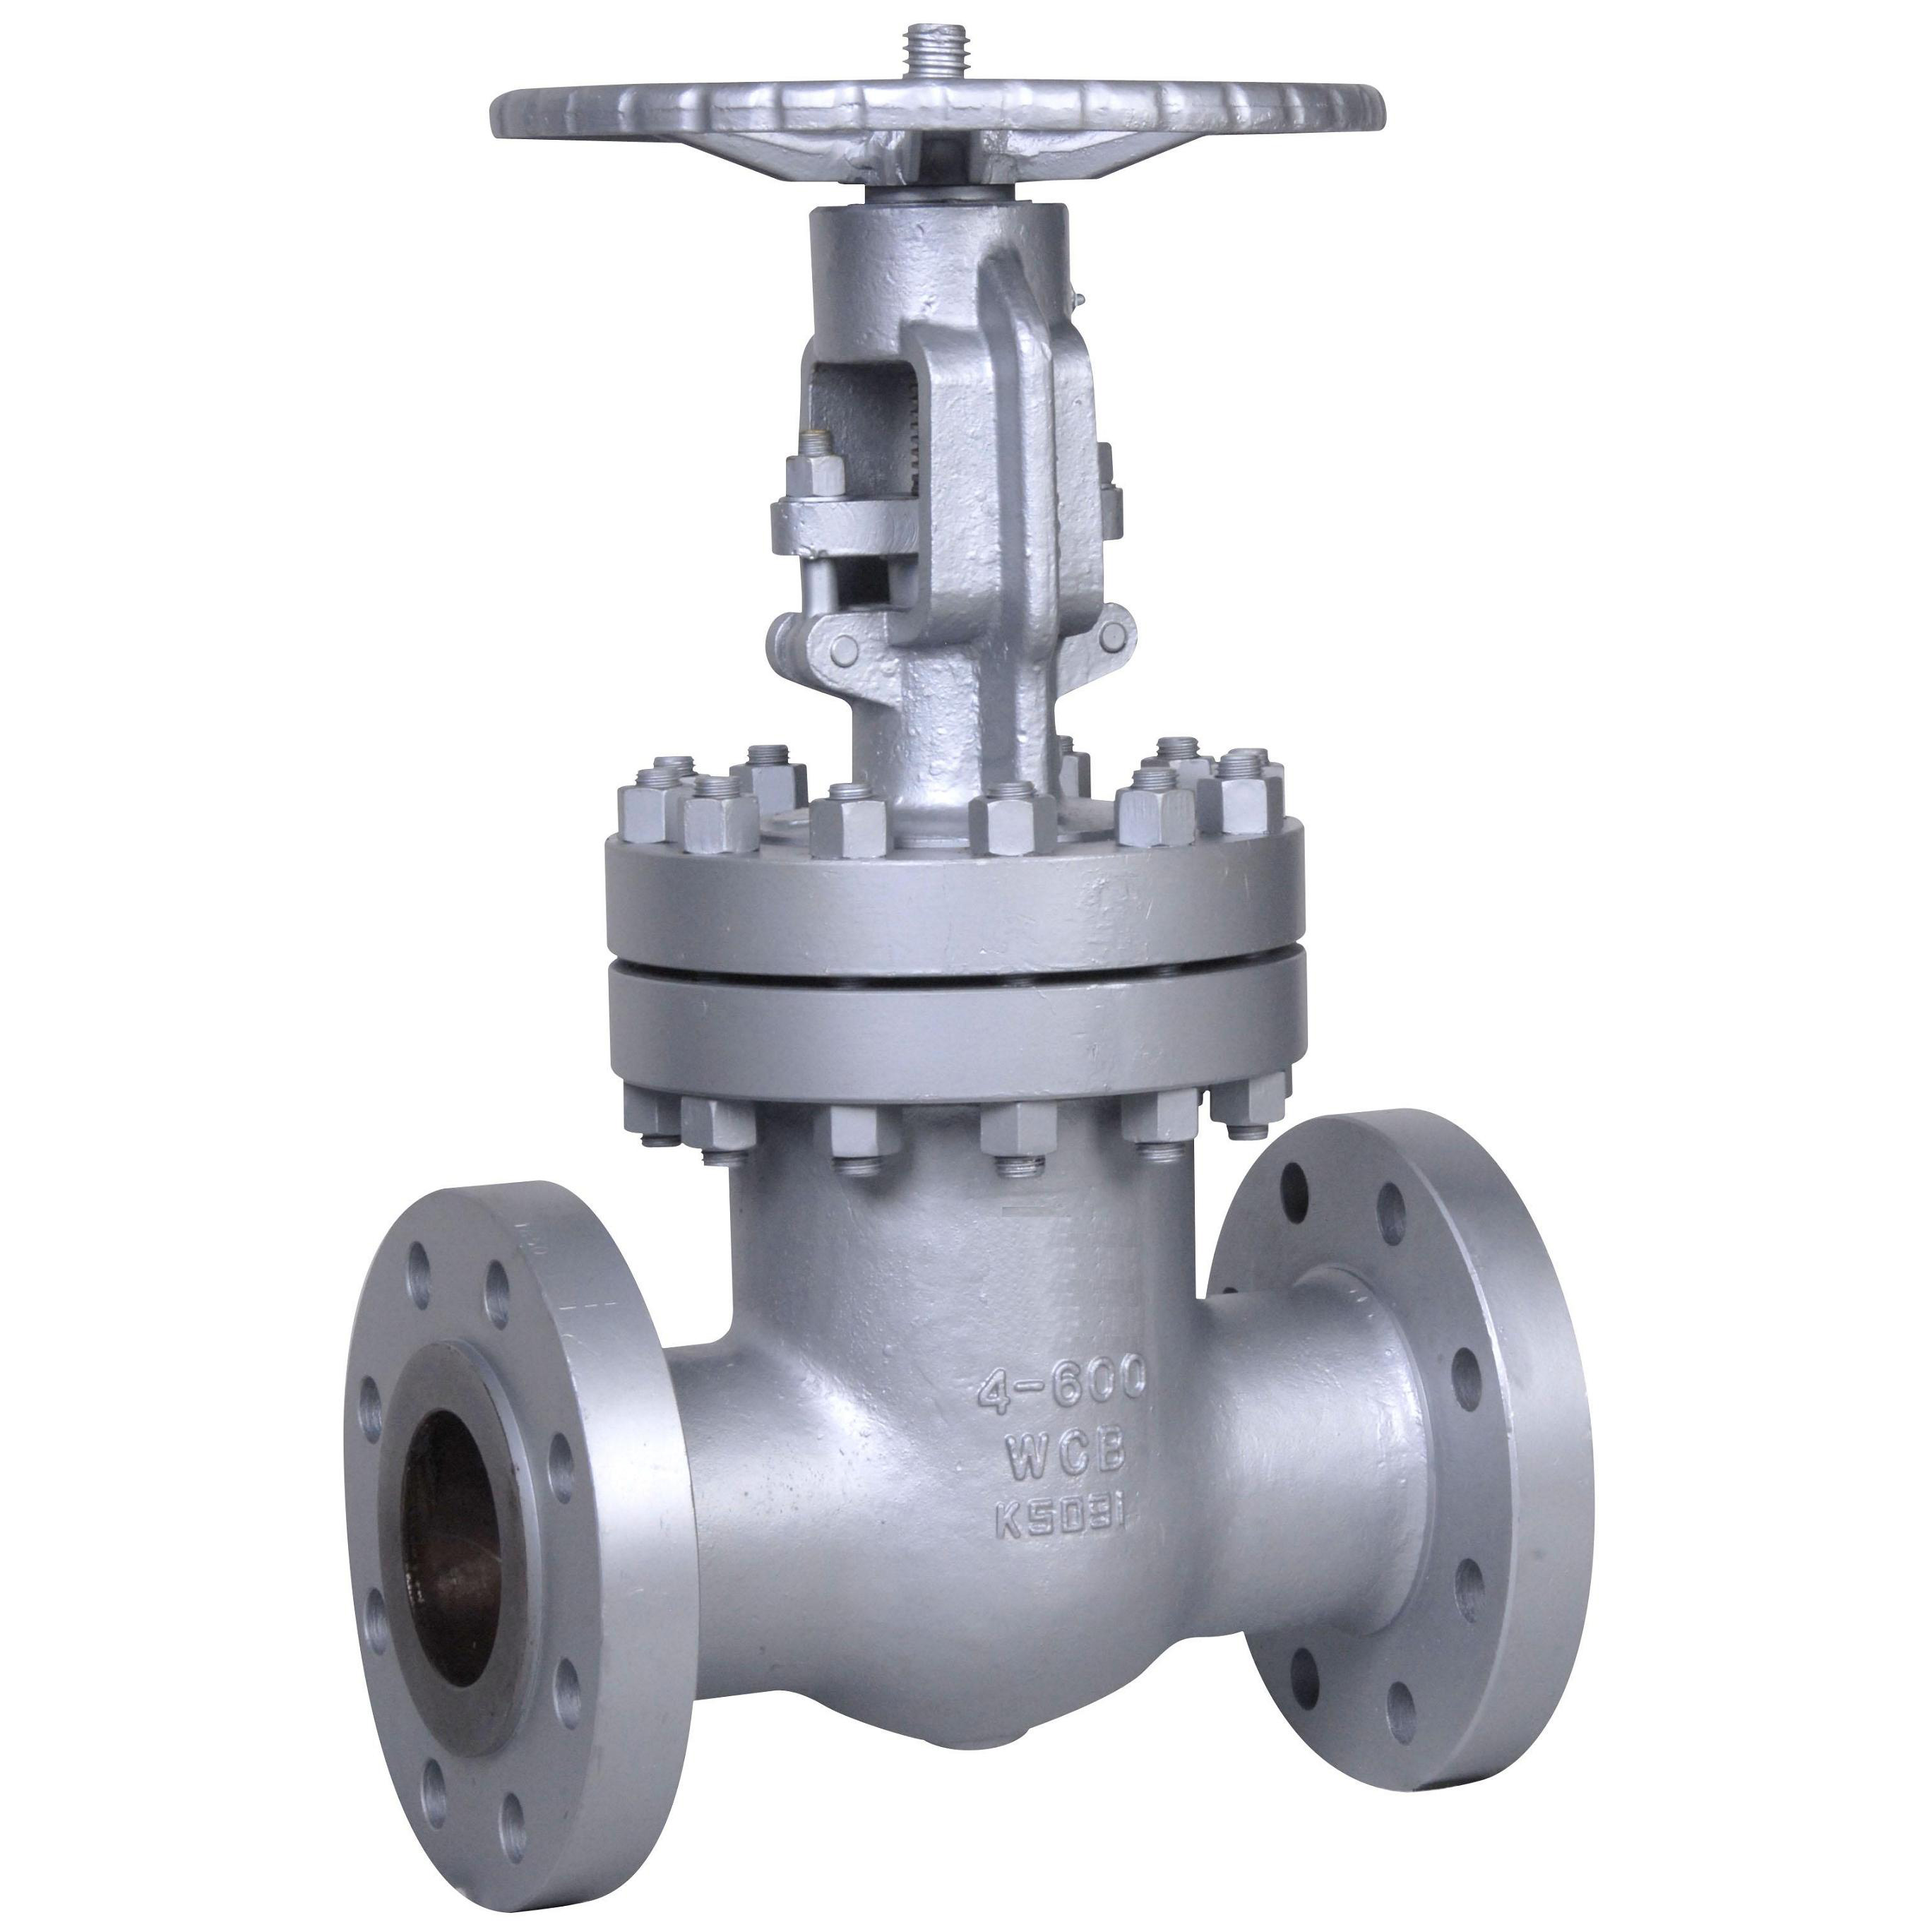 VAN CẦU - GLOBAL VALVES